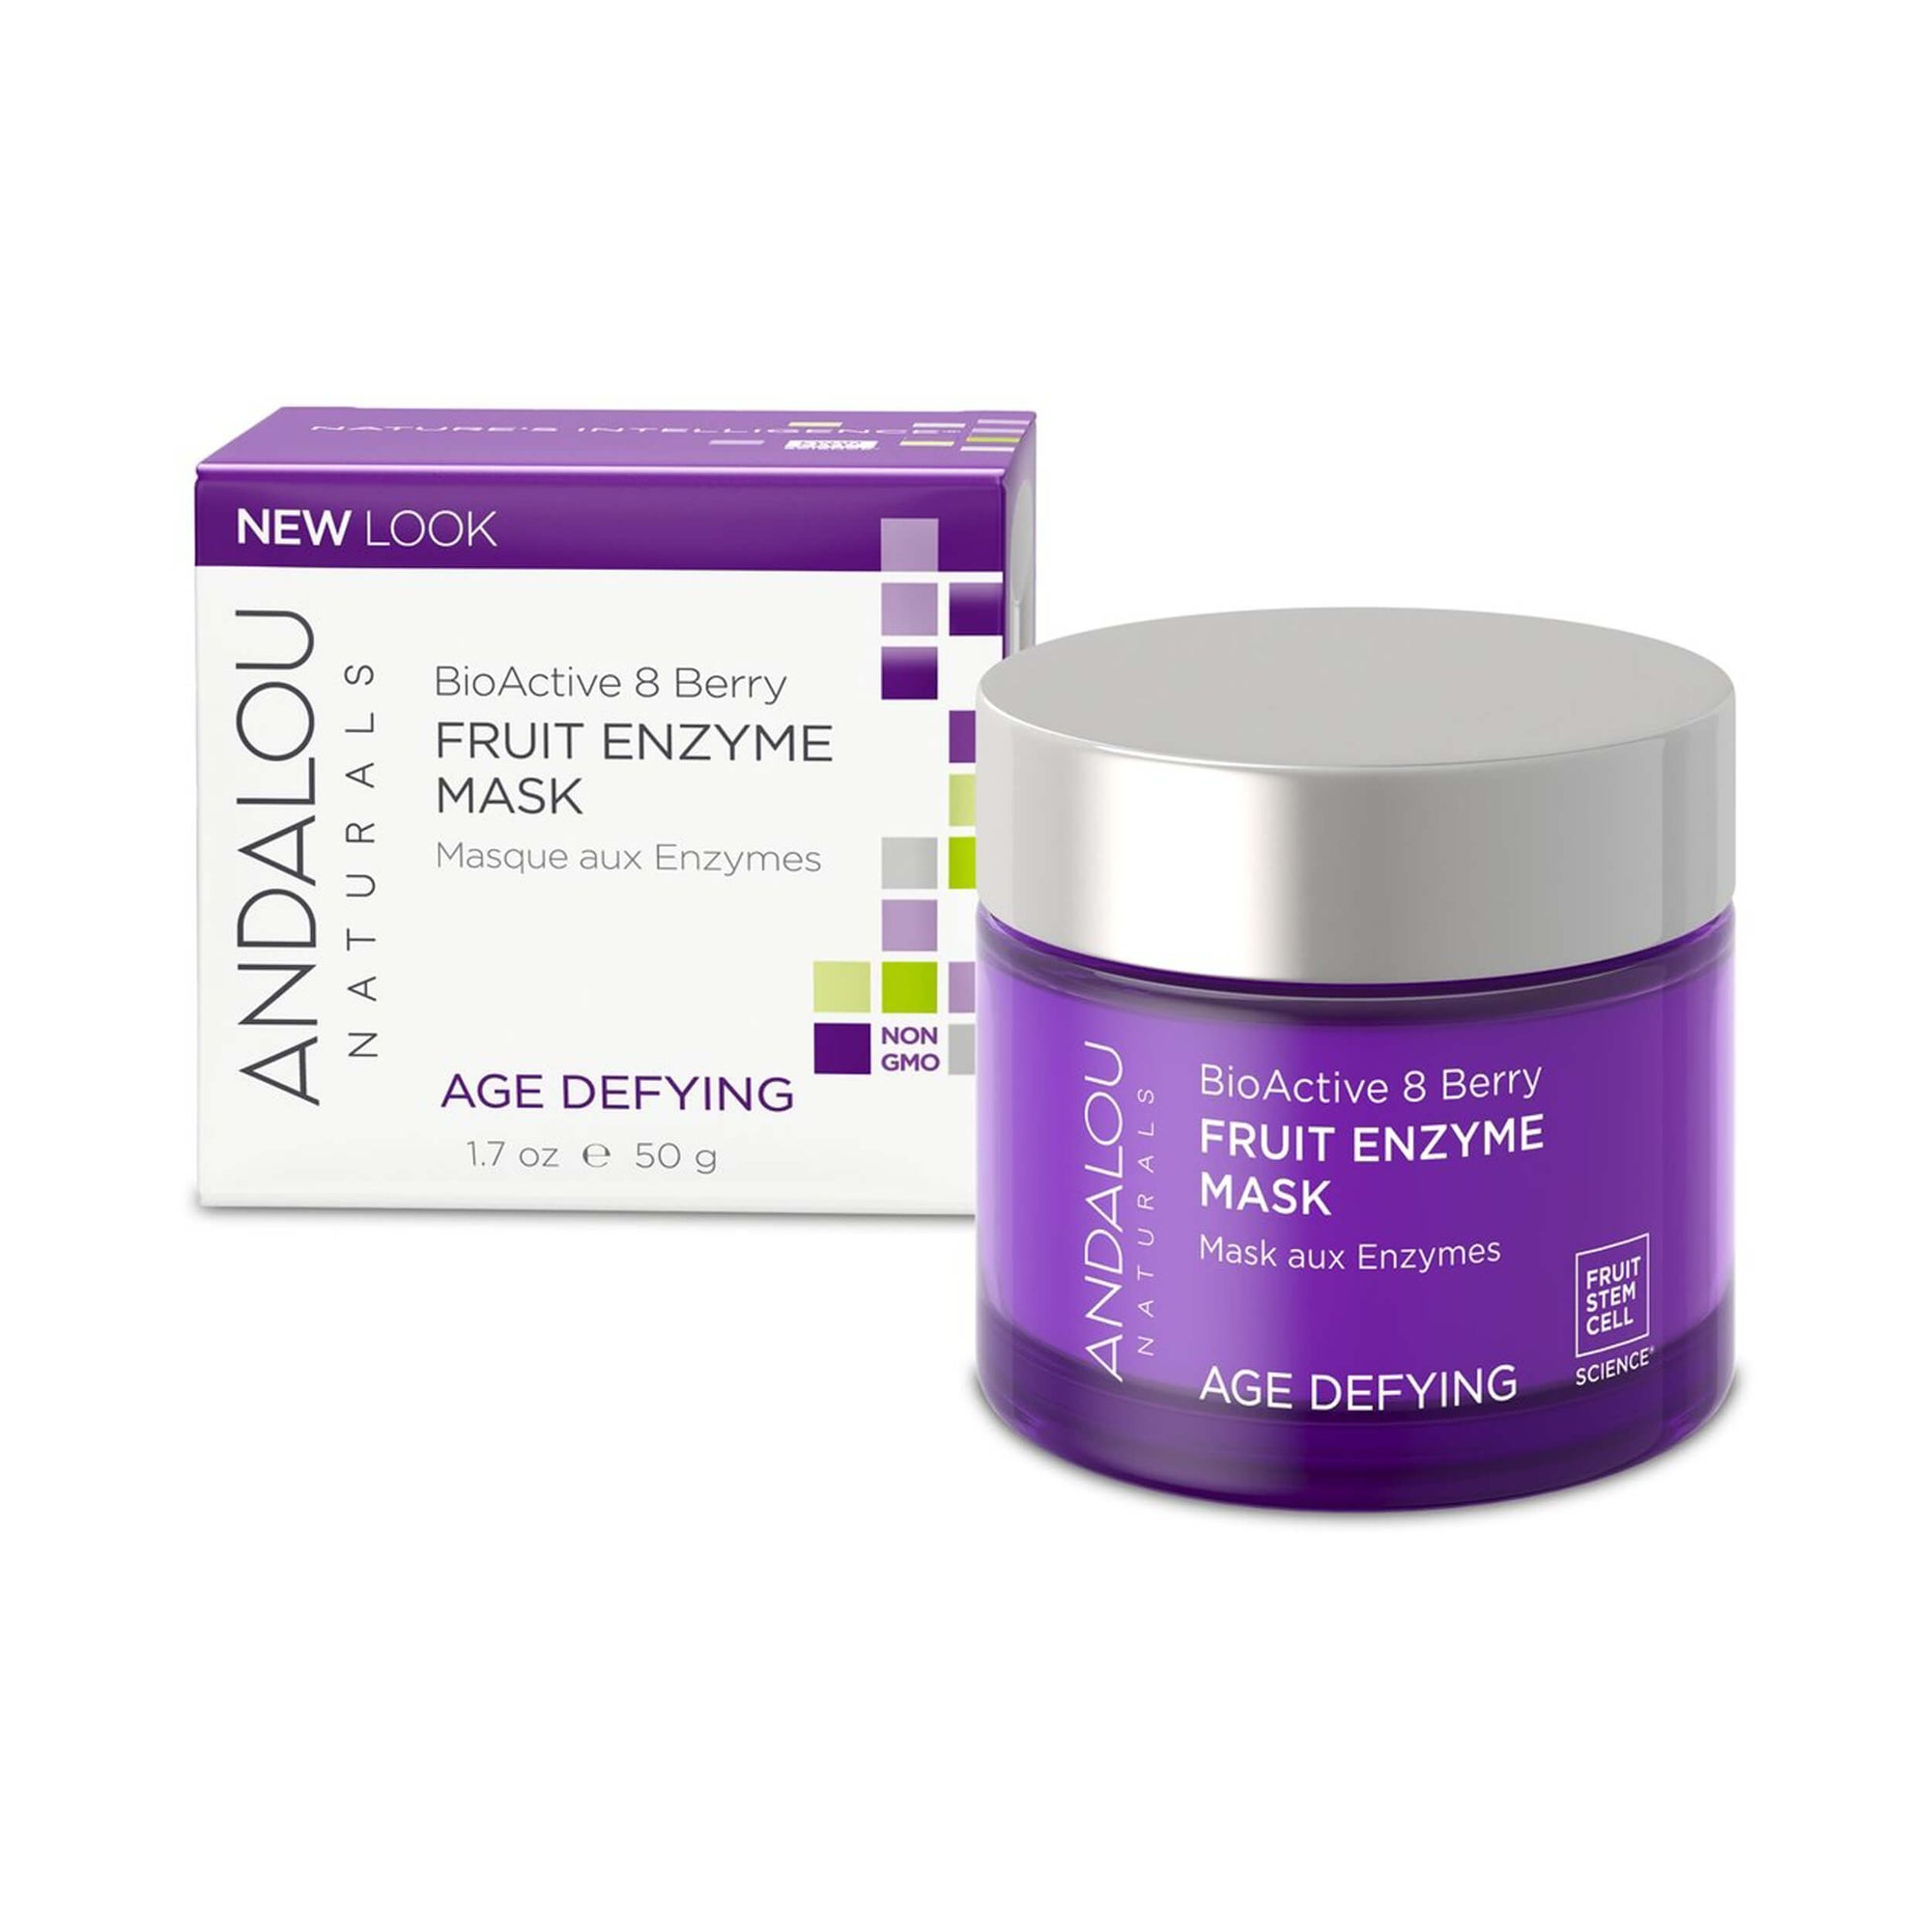 Andalou Naturals Age Defying Bioactive 8 Berry Fruit Enzyme Mask 50g